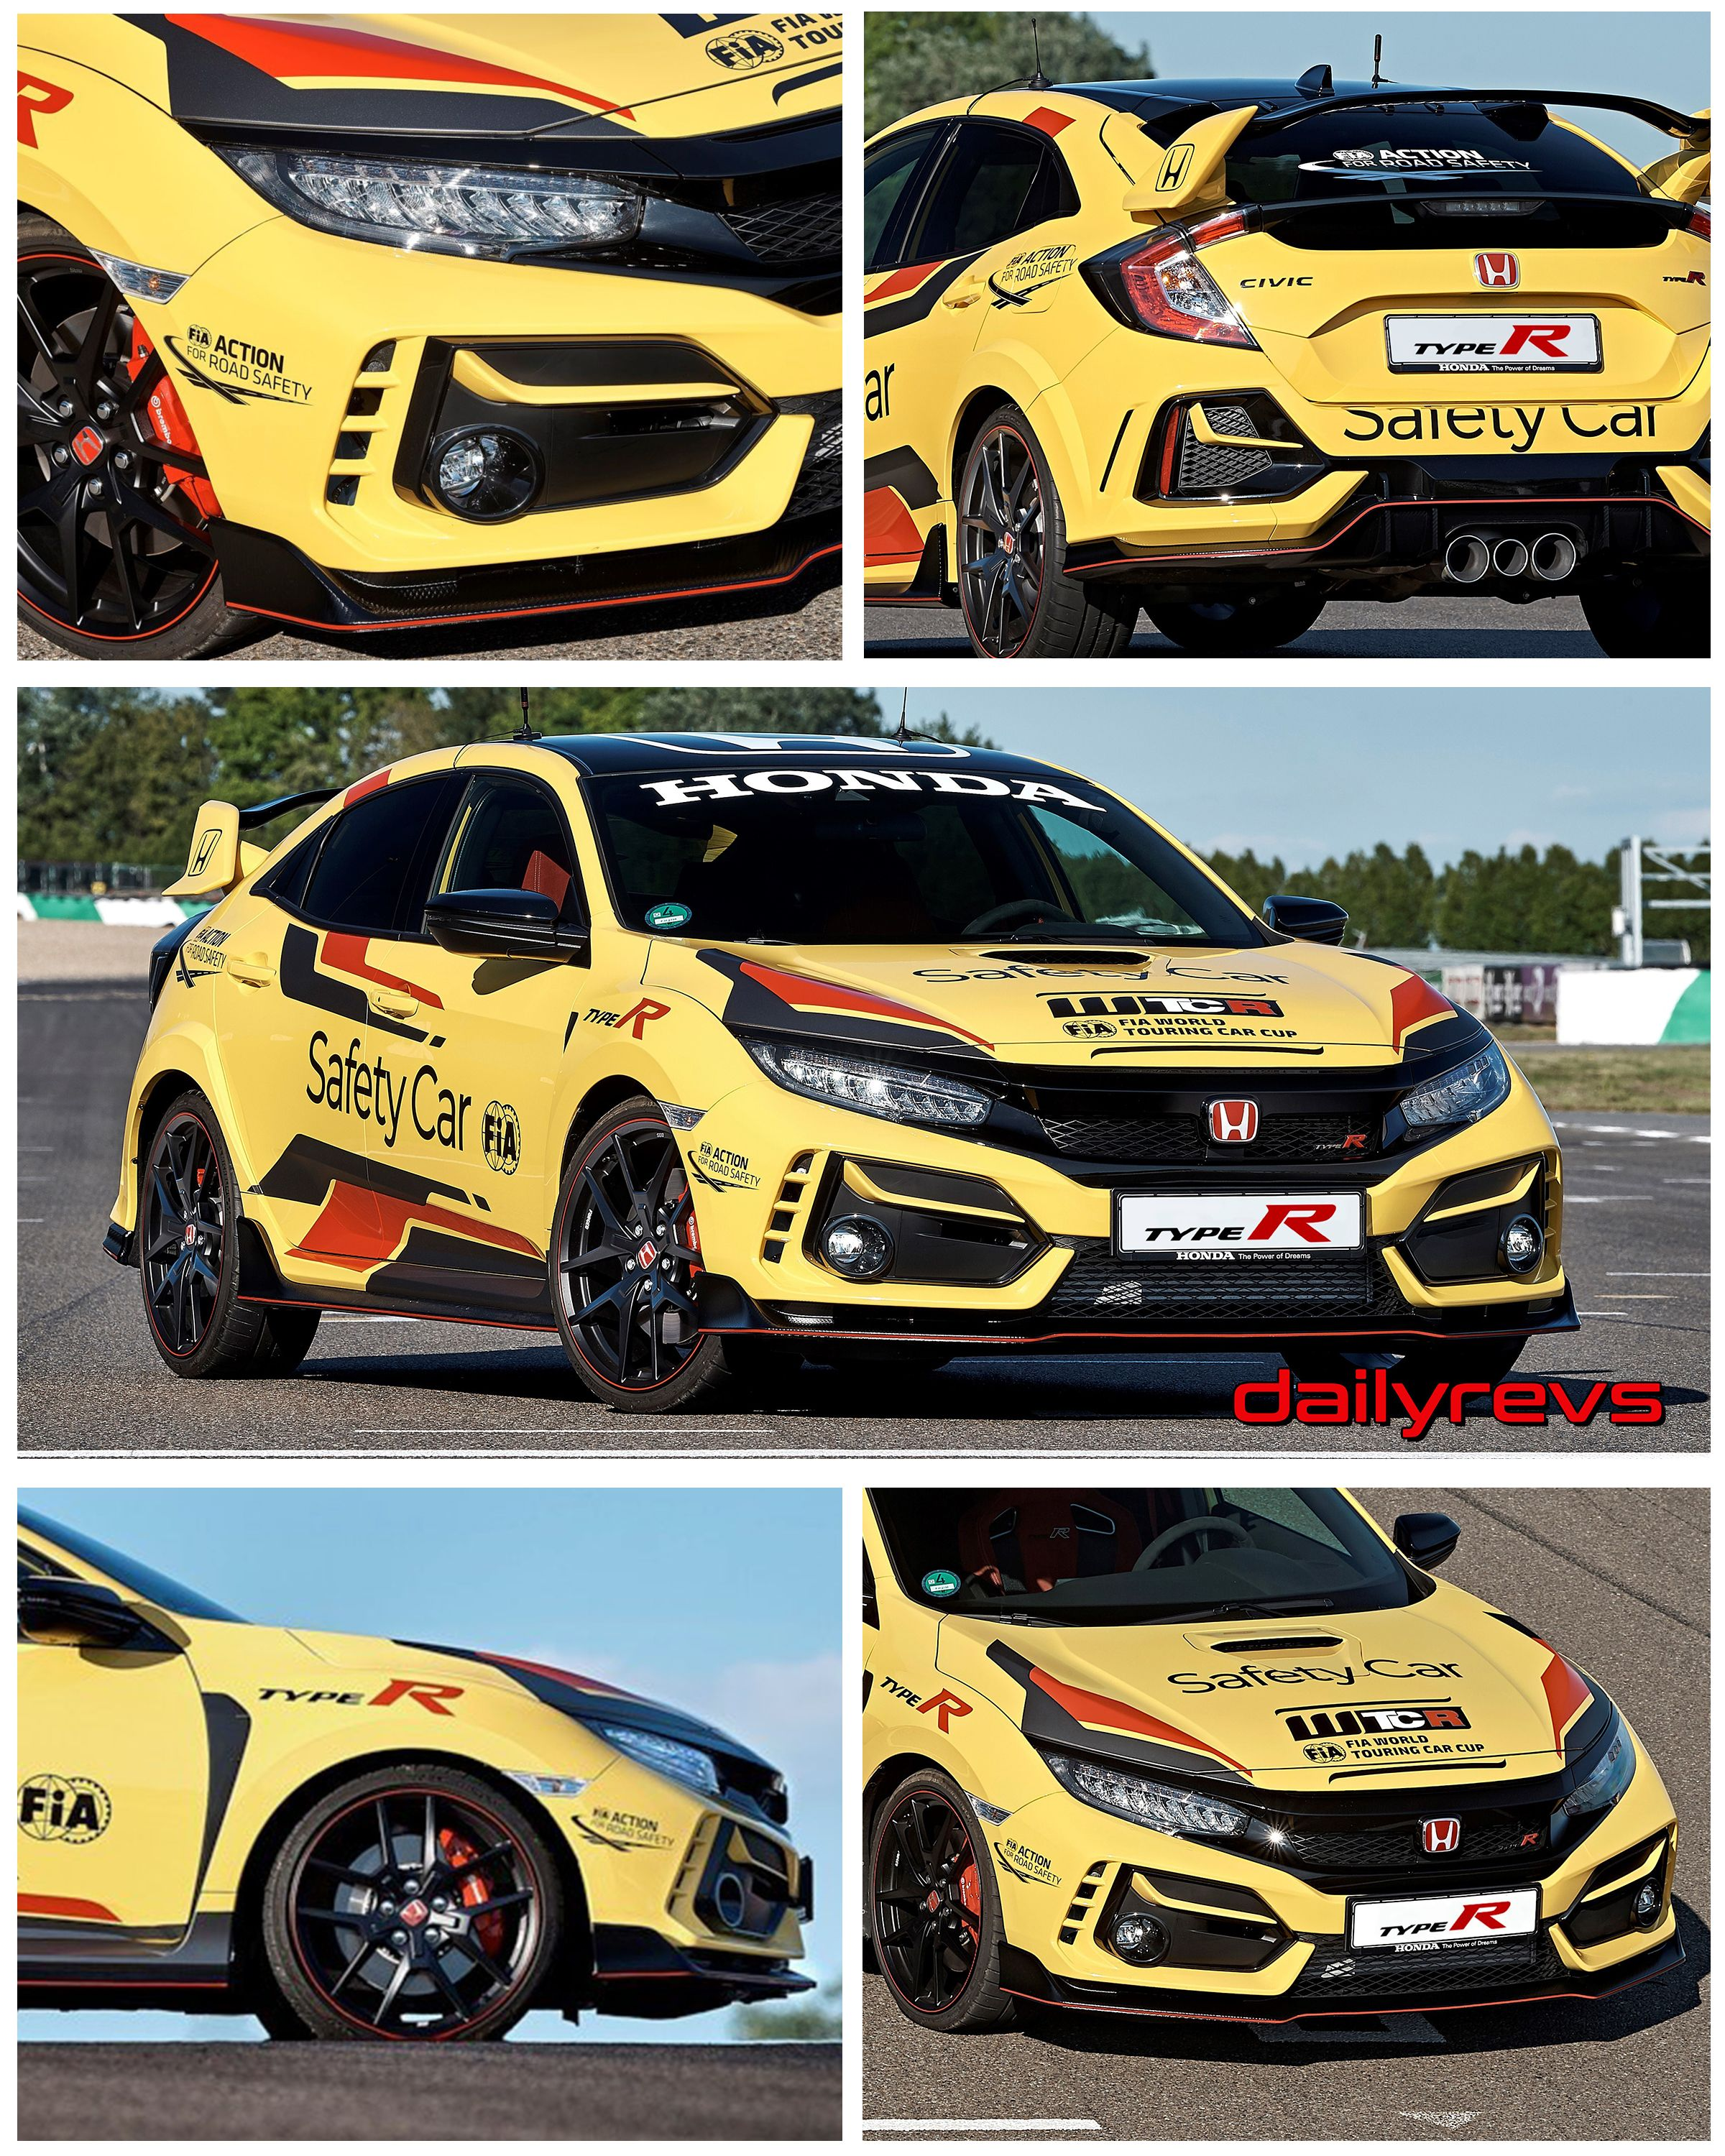 2020 Honda Civic Type R Safety Car Dailyrevs in 2020